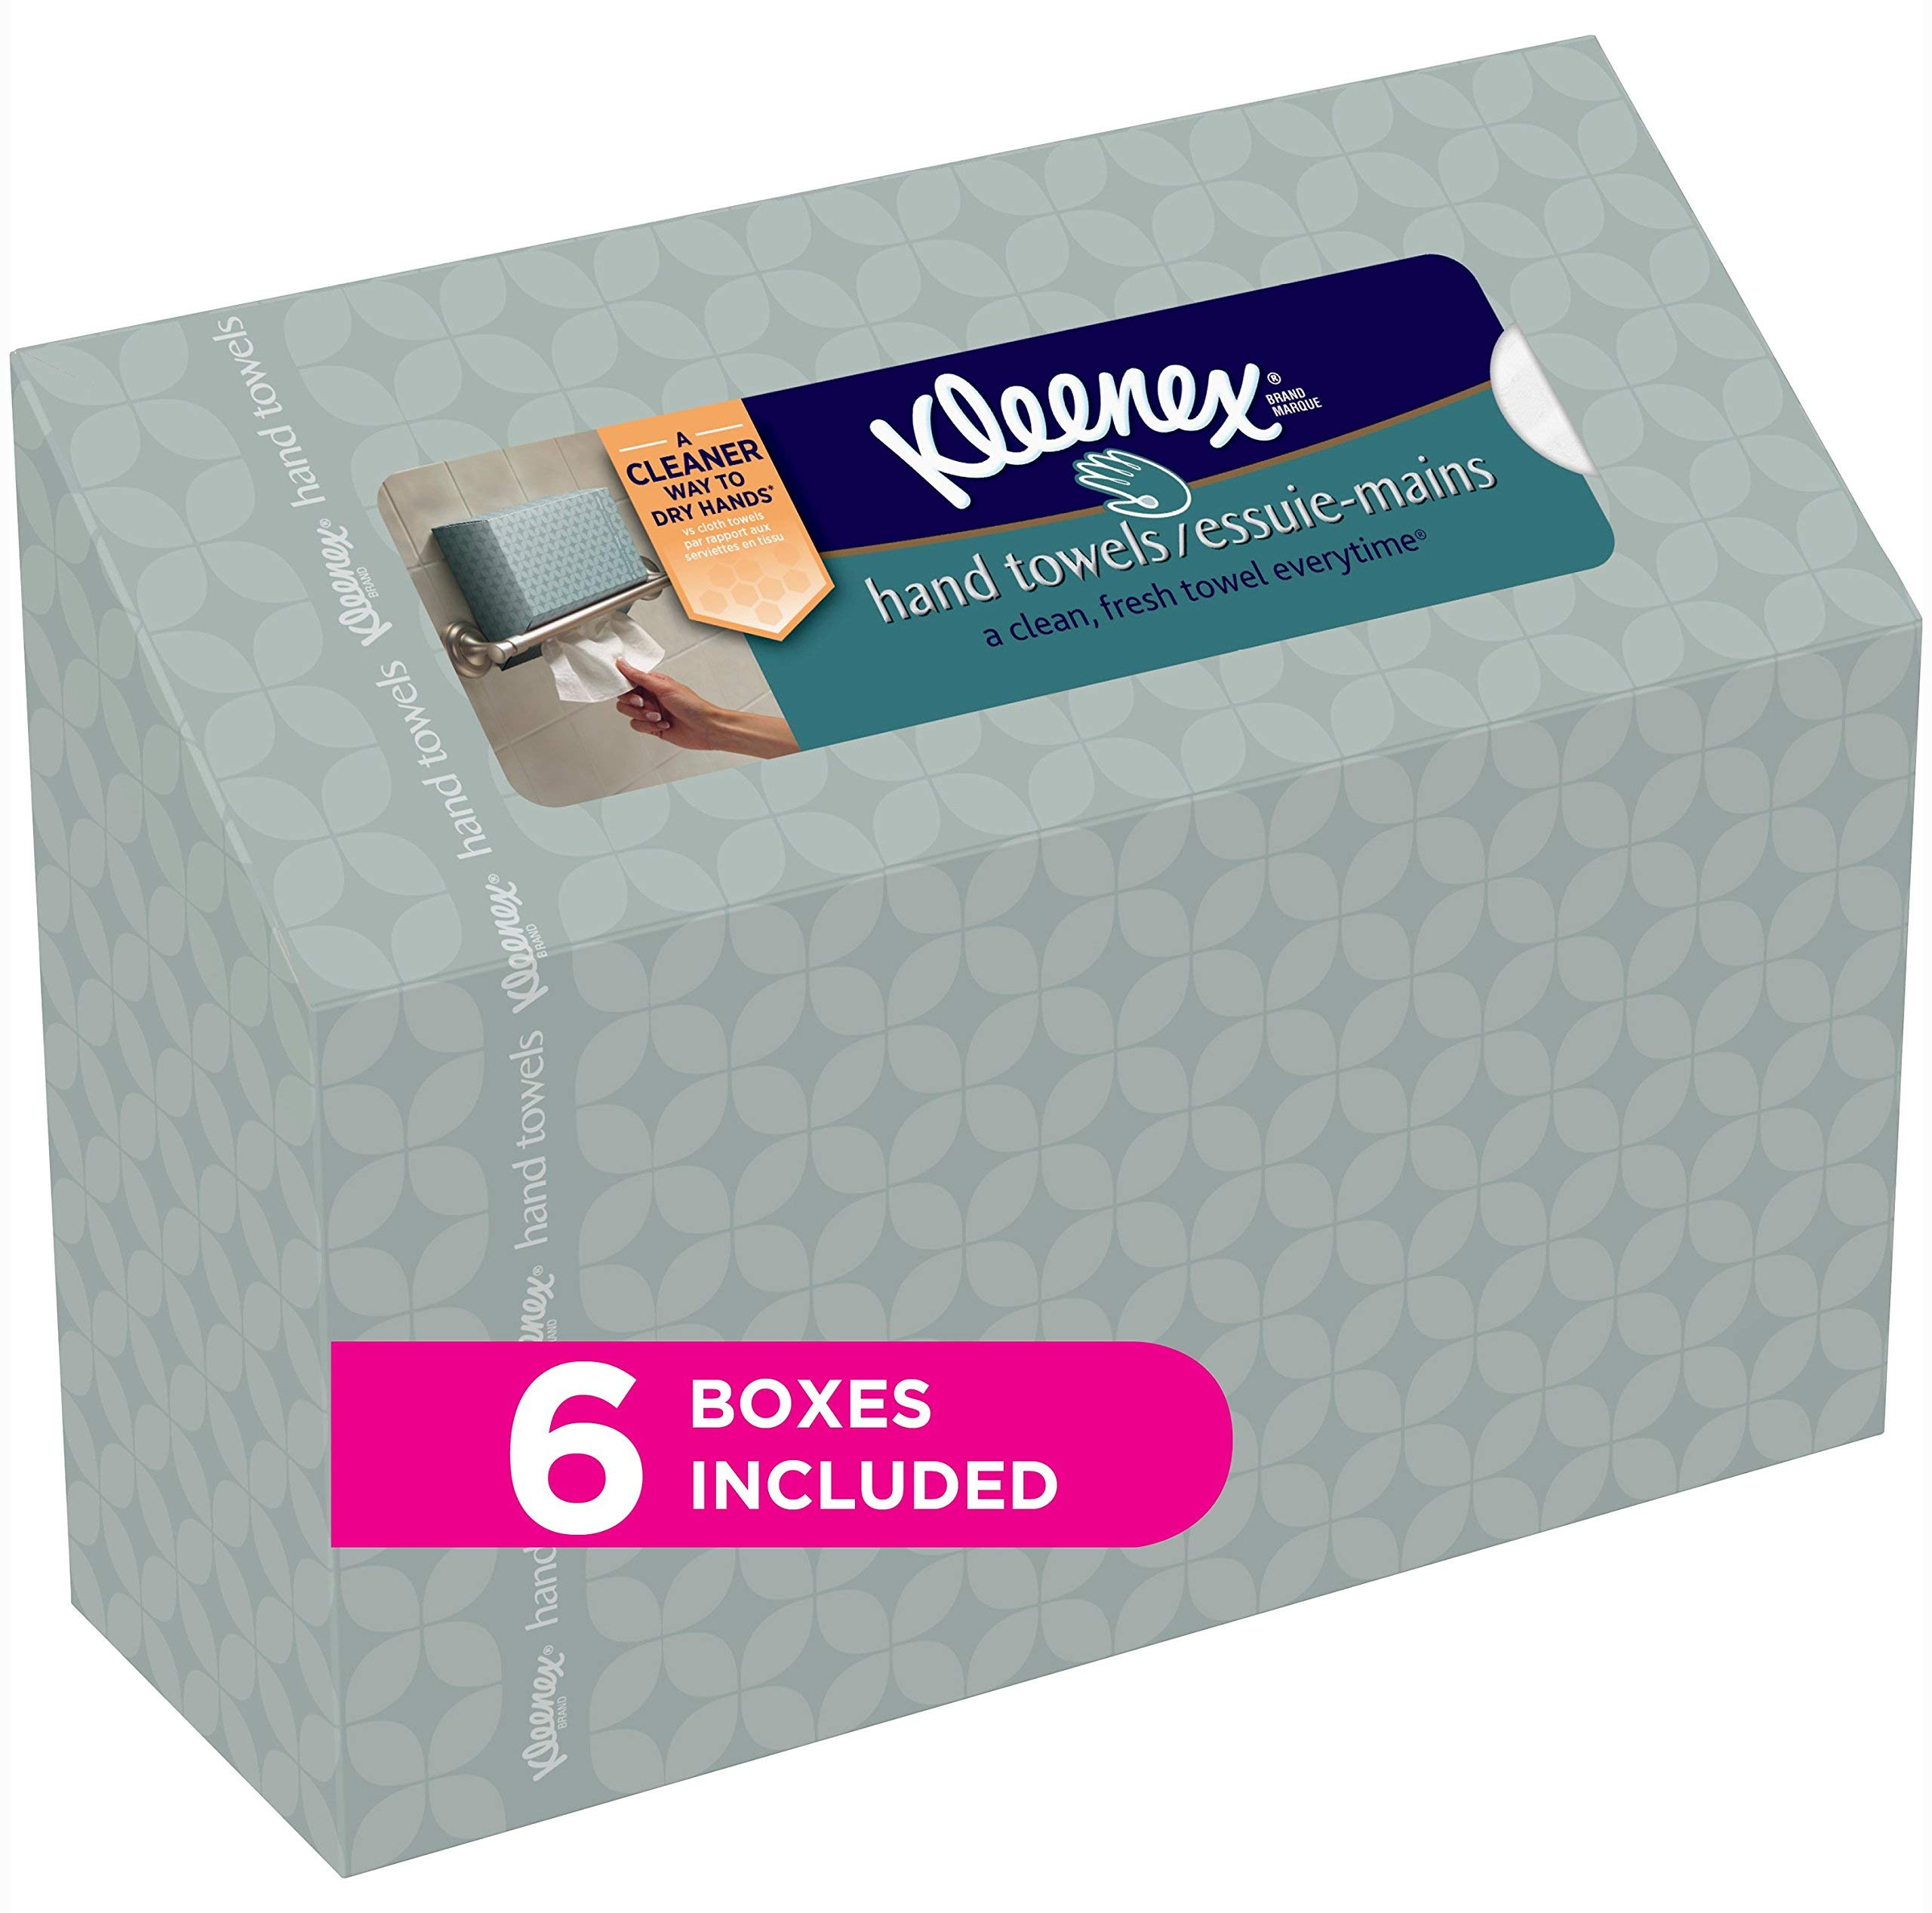 Kleenex EXXR Hand Towels, 60 Disposable Towels per Box, 2 Case of 6 Boxes by  (Image #1)